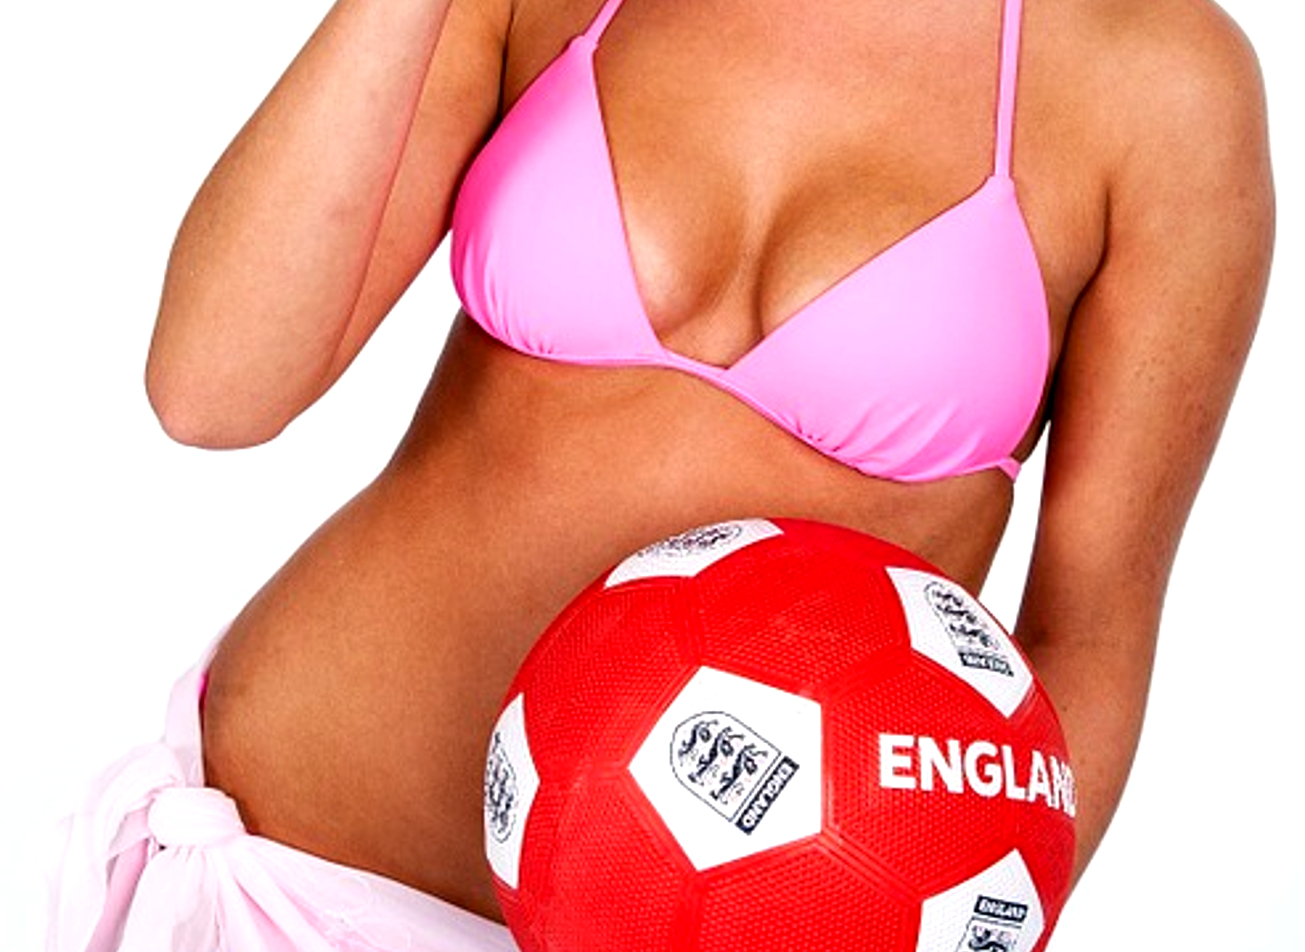 football indoor contre joueuses sexy strip budapest activites vimigo